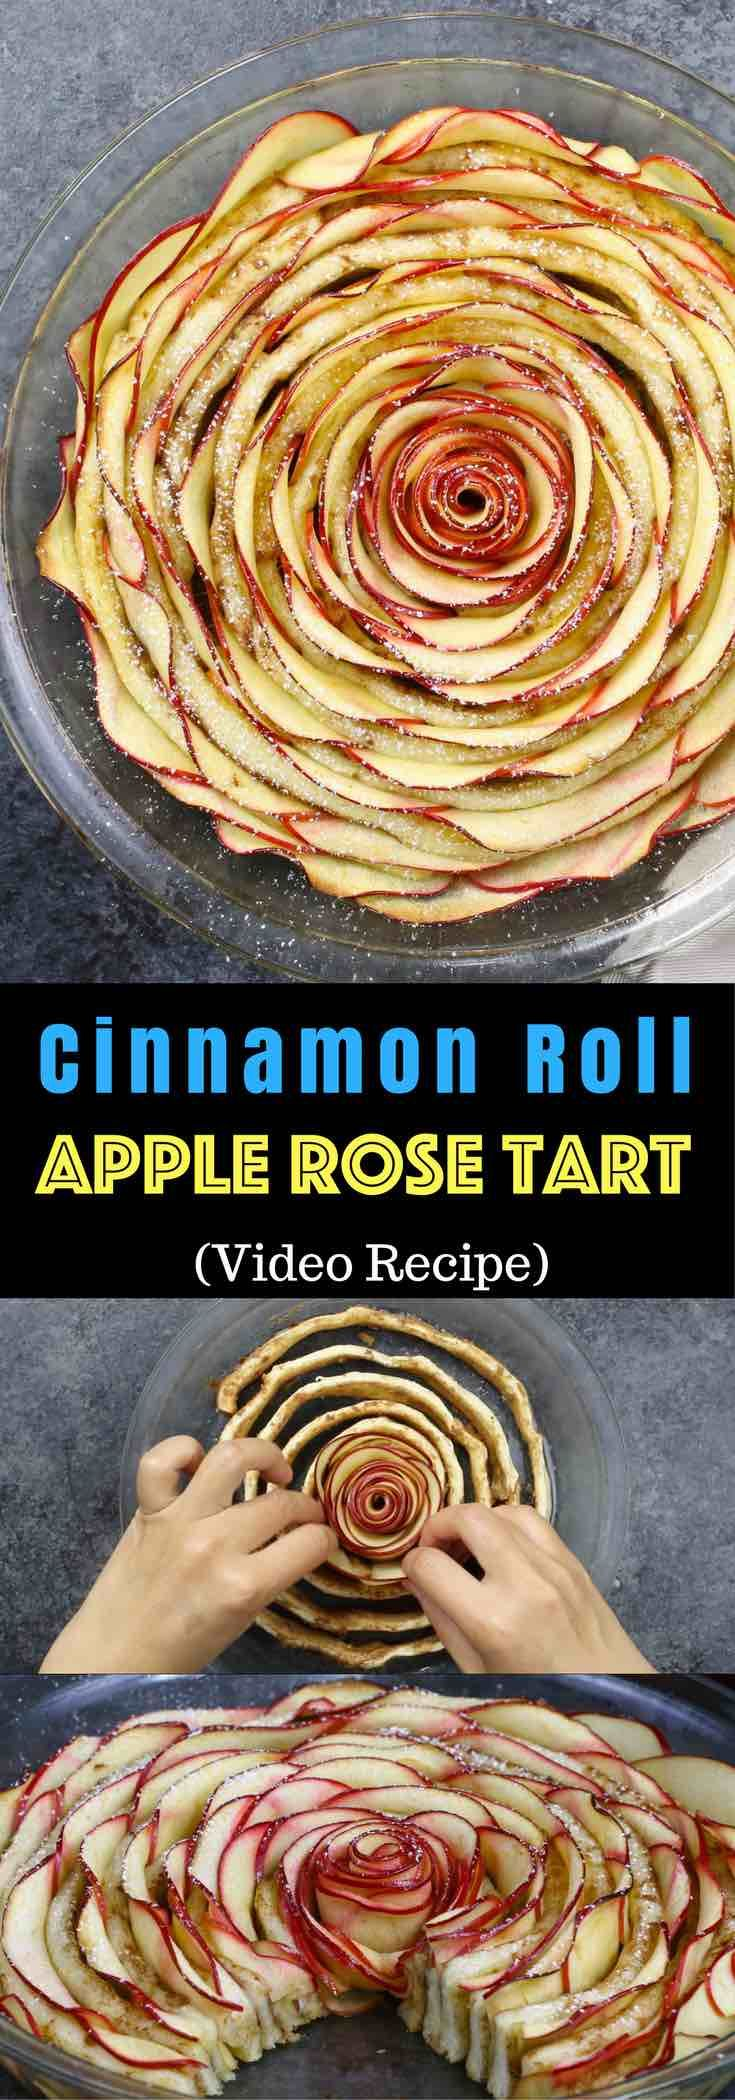 Wow your guests with this gorgeous and delicious Cinnamon Roll Apple Rose Tart. It's so easy to make and are perfect for any party. Made with fresh apples. All you need is only 5 simple ingredients: cinnamon roll dough, red apples, lemon juice, brown sugar and butter. So beautiful! Quick and easy recipe. Vegetarian. Video recipe. | Tipbuzz.com